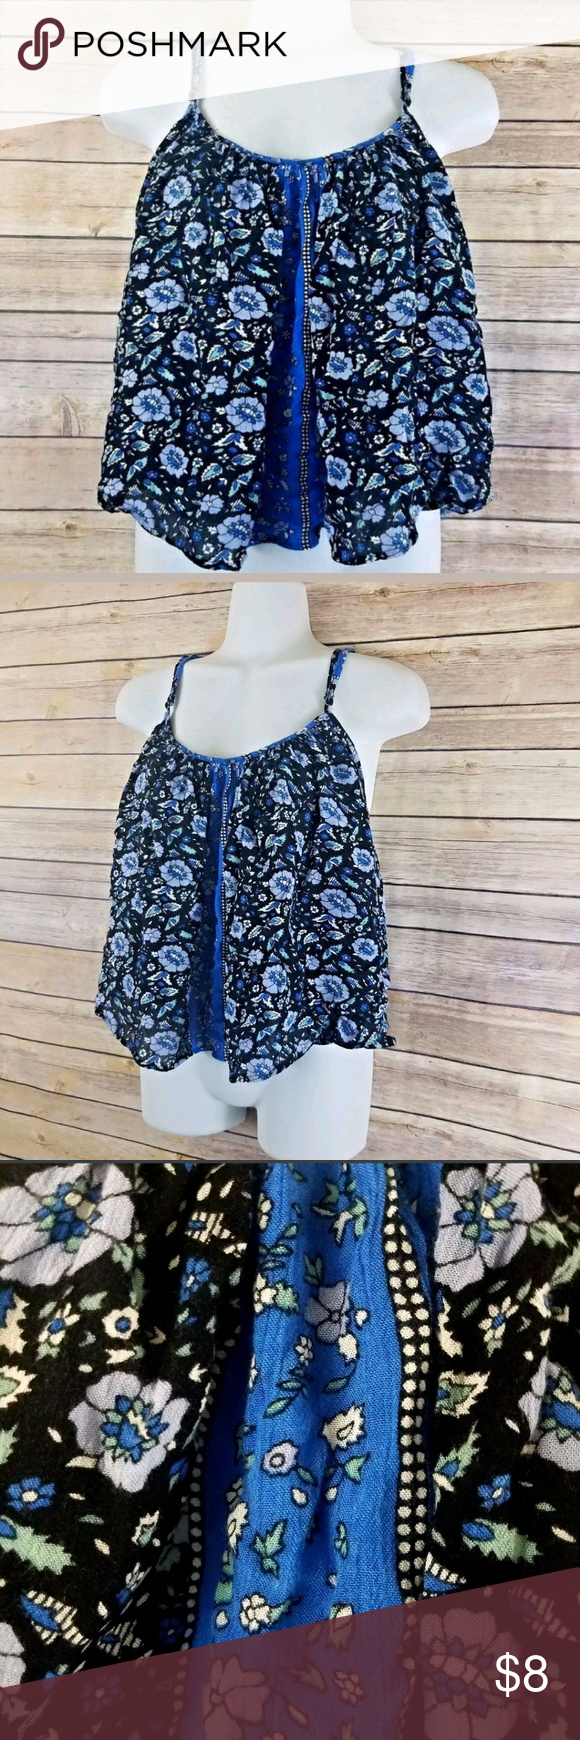 Floral Swing Tank Semi Crop M XXI Black Blue Black and blue floral swing semi cropped tank top with adjustable straps.Perfect for summer!  Brand:XXI Size: Medium  Measurements (approximate):  Chest:43 inches Waist:68inches Length: (from neckline down)15.25 inches  Condition:Pre-loved. No holes, rips, or stains. Fray on one strap. Forever 21 Tops Tank Tops